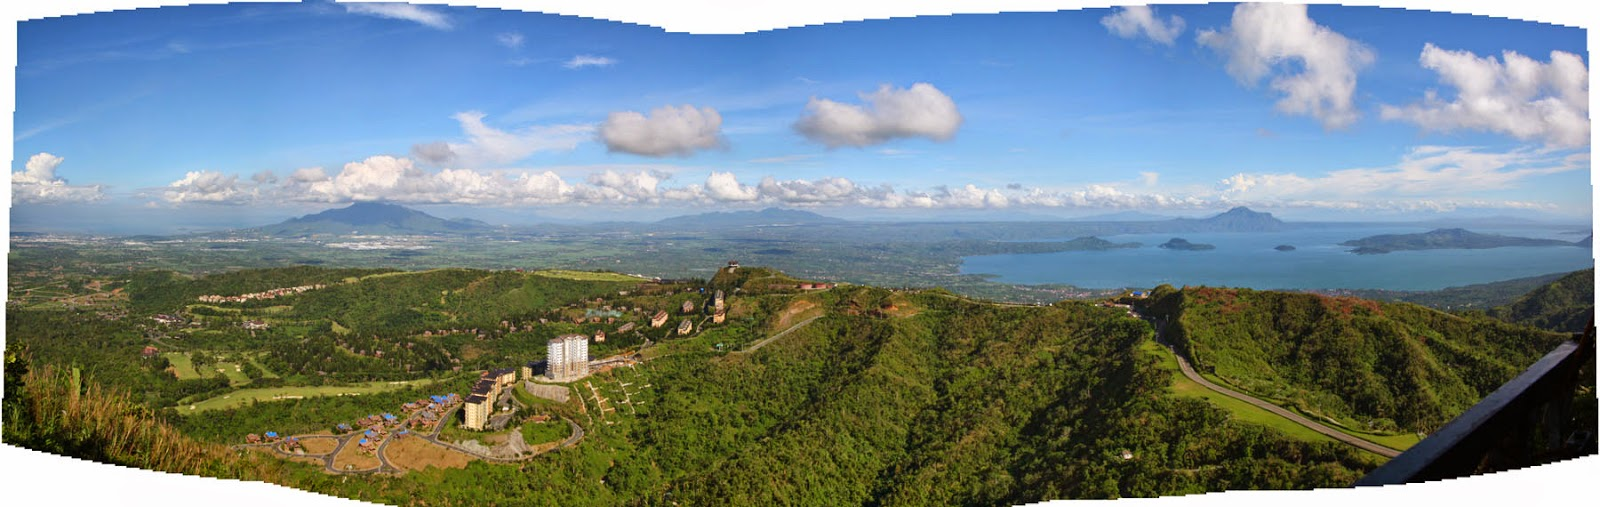 People's Park in the Sky Tagaytay & Lake Taal, Mustachioventures: People's Park in the Sky